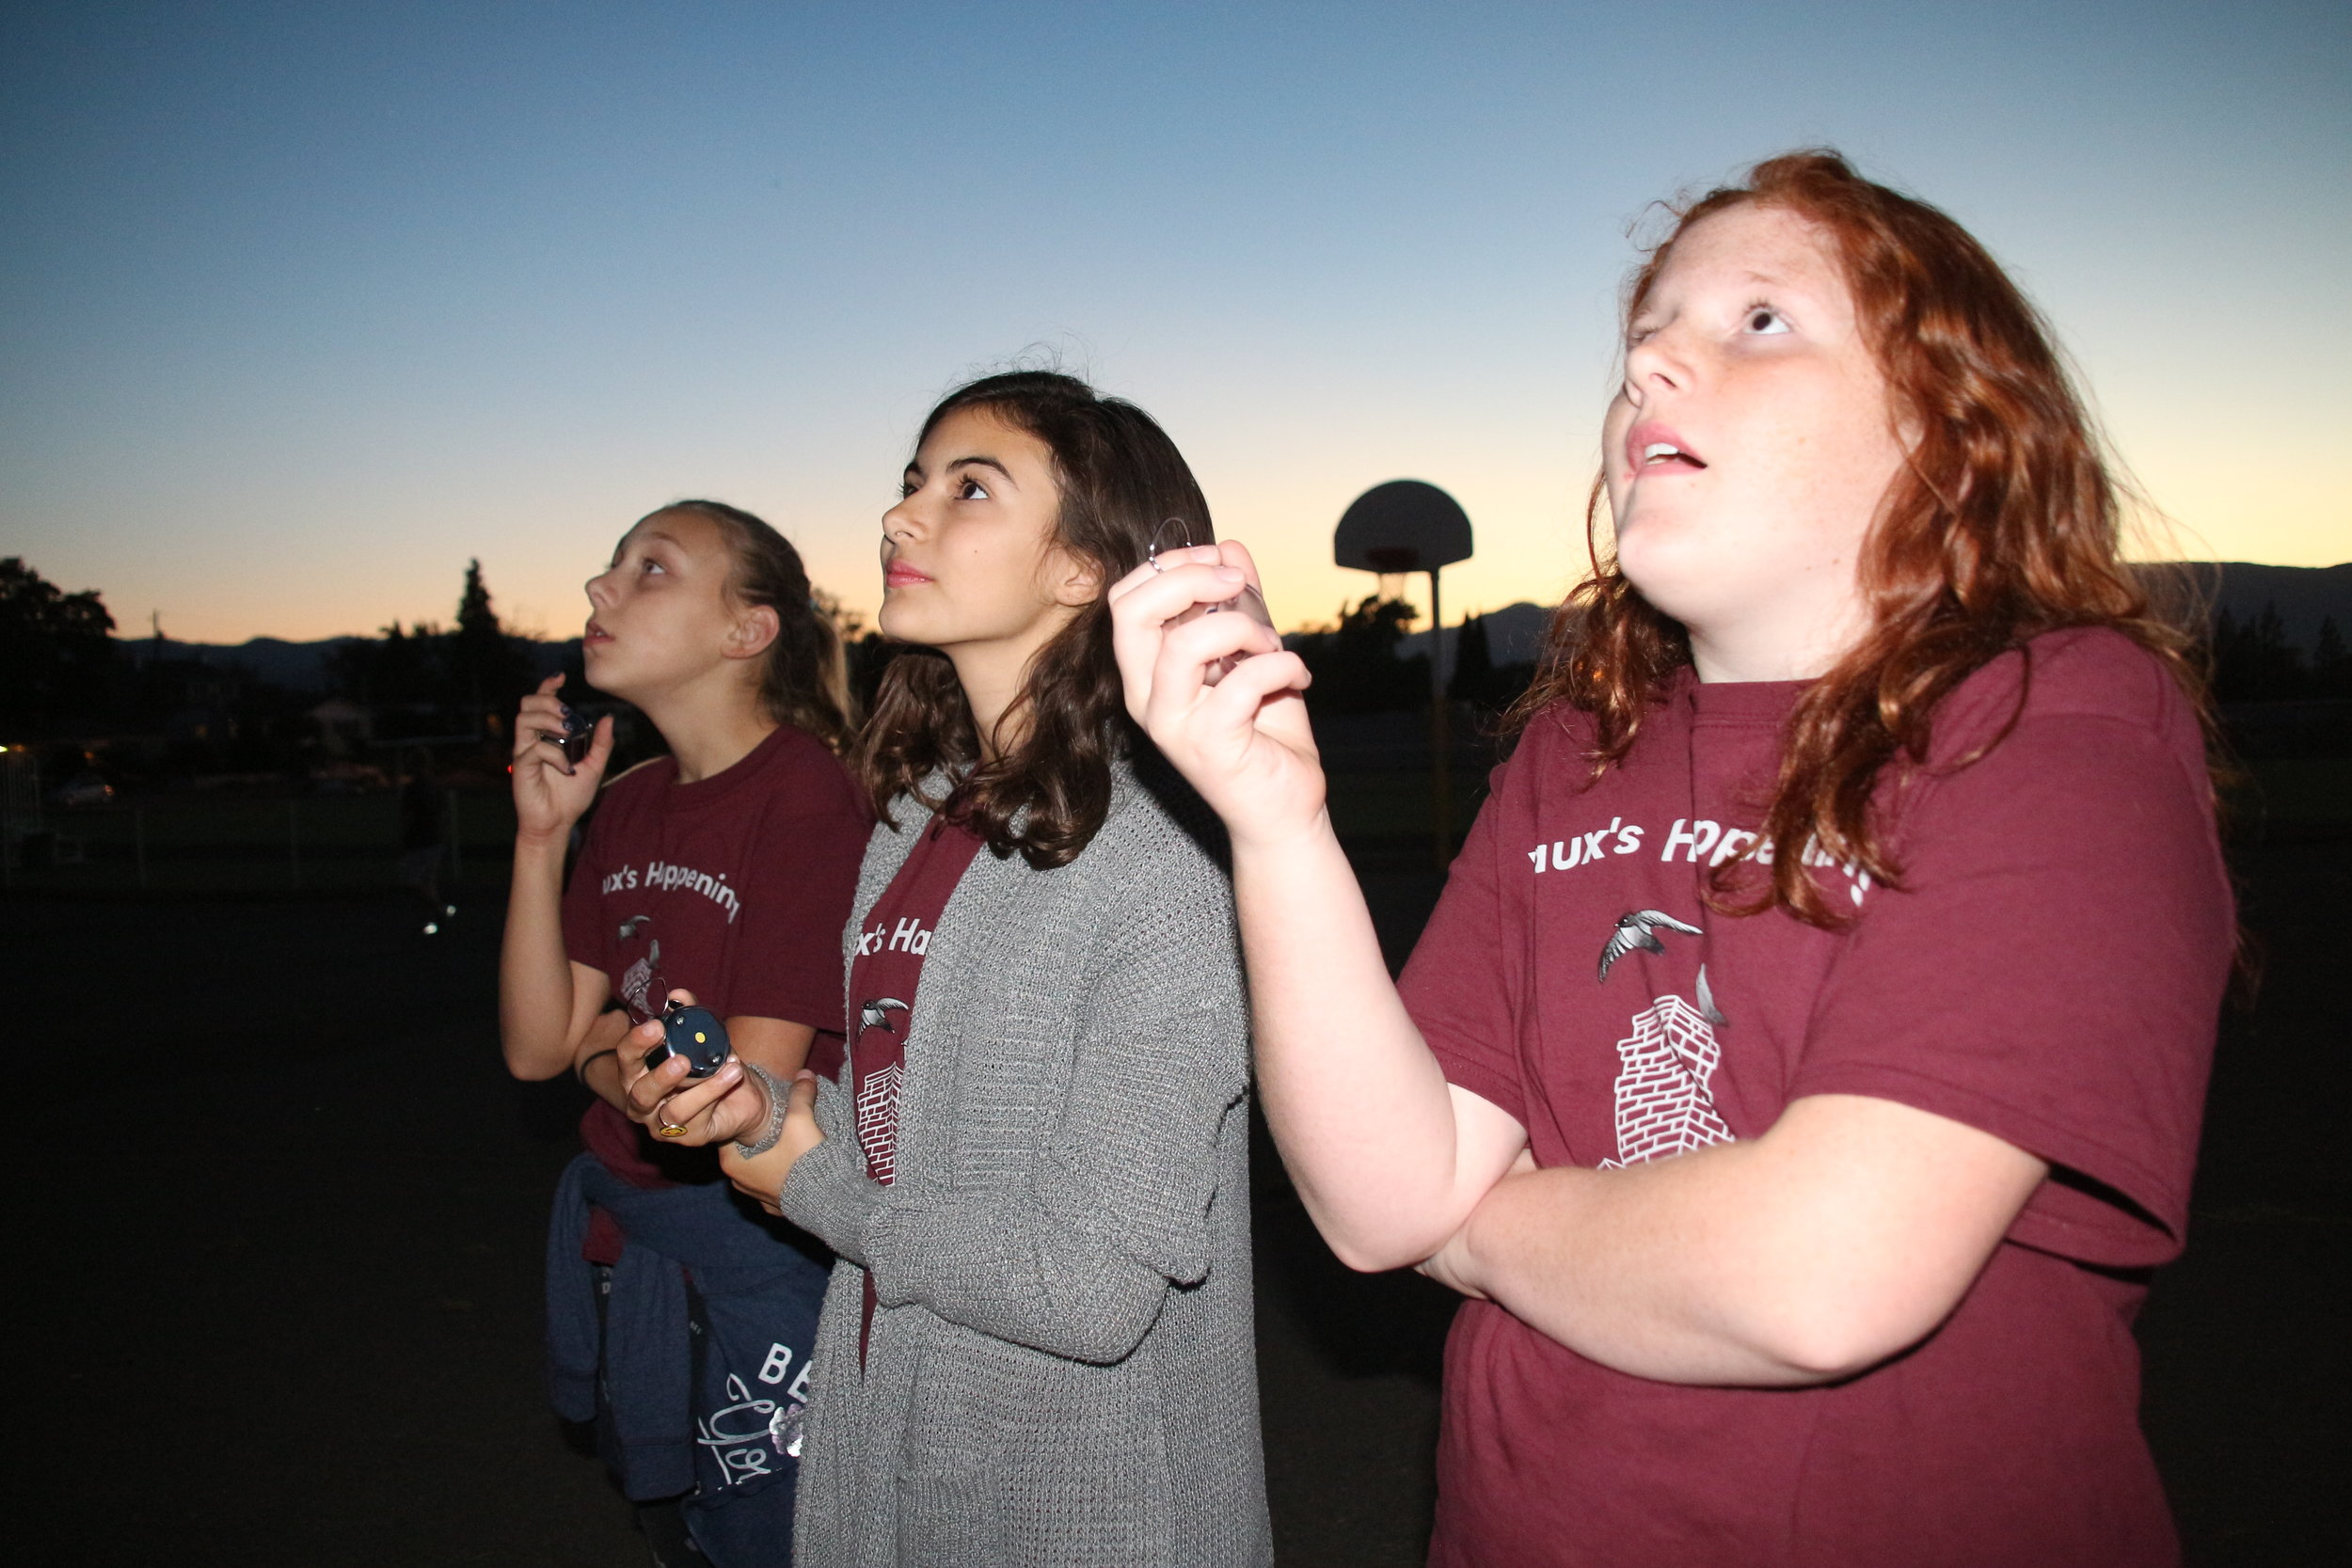 Three 7th grade Hedrick Middle School citizen scientists grip their tally counters with eyes glued to the school's chimney. They are poised to count the swifts entering their evening roost during fall migration as part of the citizen science program called  Vaux's Happening .